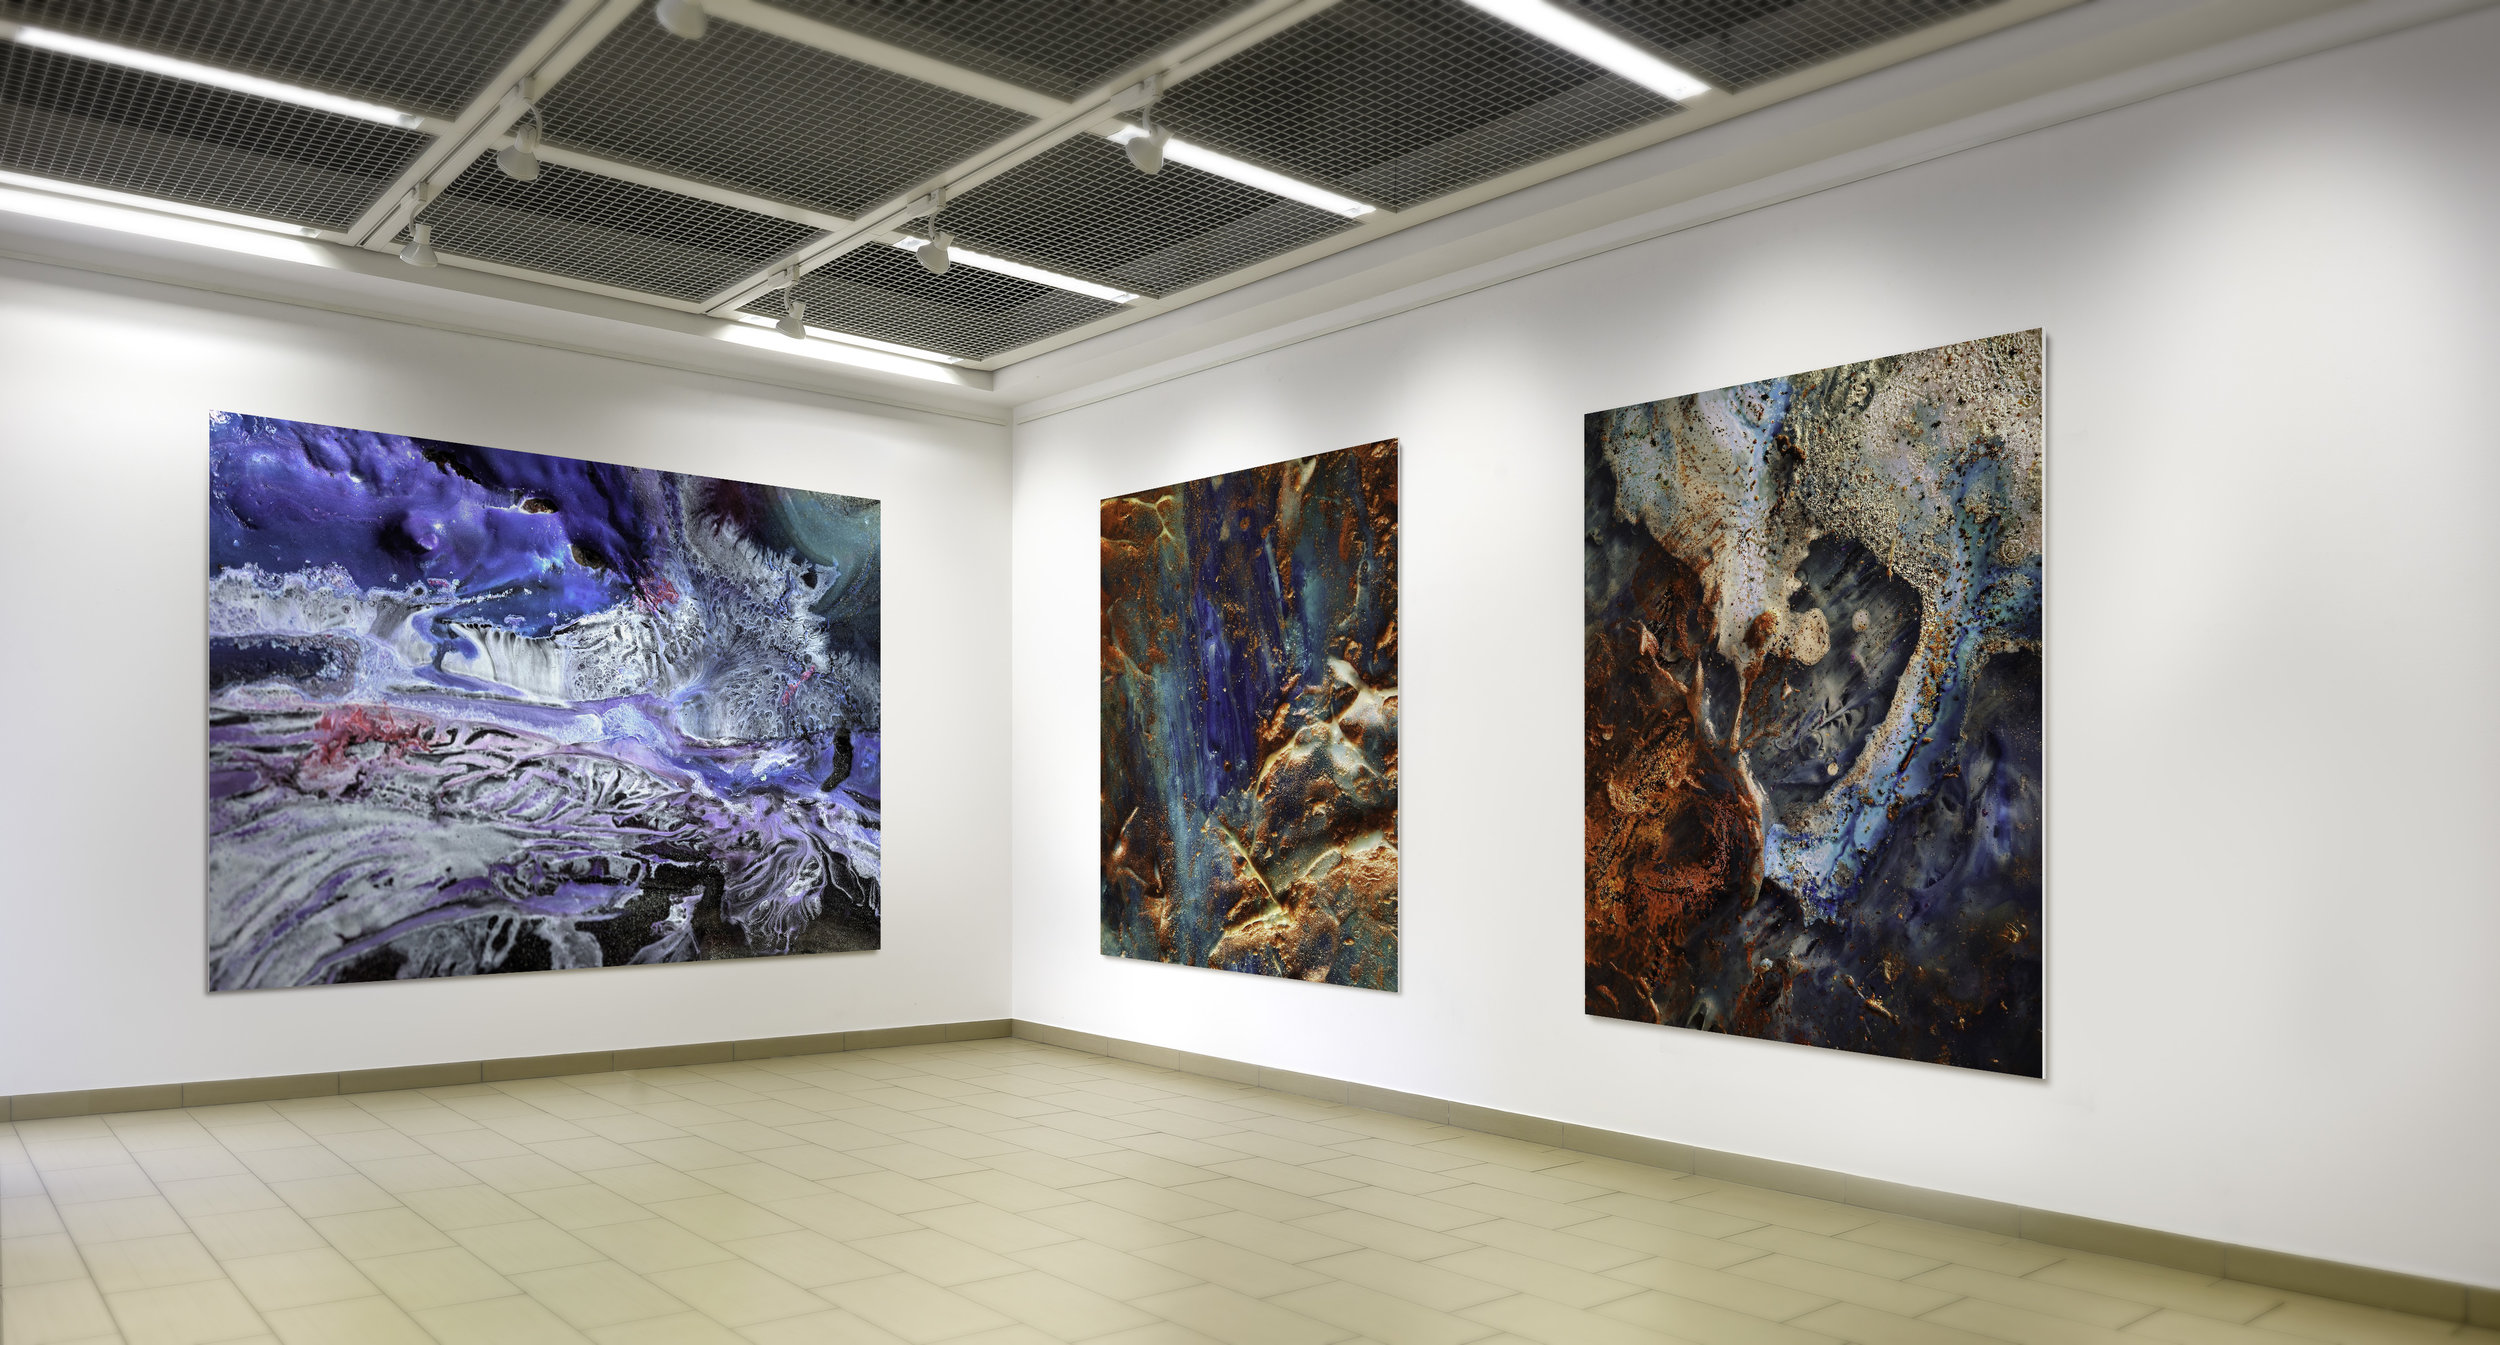 """(Left to Right)  """" Coral Slice """"   MacoScapes - Aluminum Photograph - (60""""x72""""x2"""")  """" Lava by the Ocean """"   MacroScapes - Aluminum Photograph - (60""""x36""""x2"""")   """"Blue Quasar 2B""""      MacroScapes - Aluminum Photograph - (60""""x36""""x2"""")"""